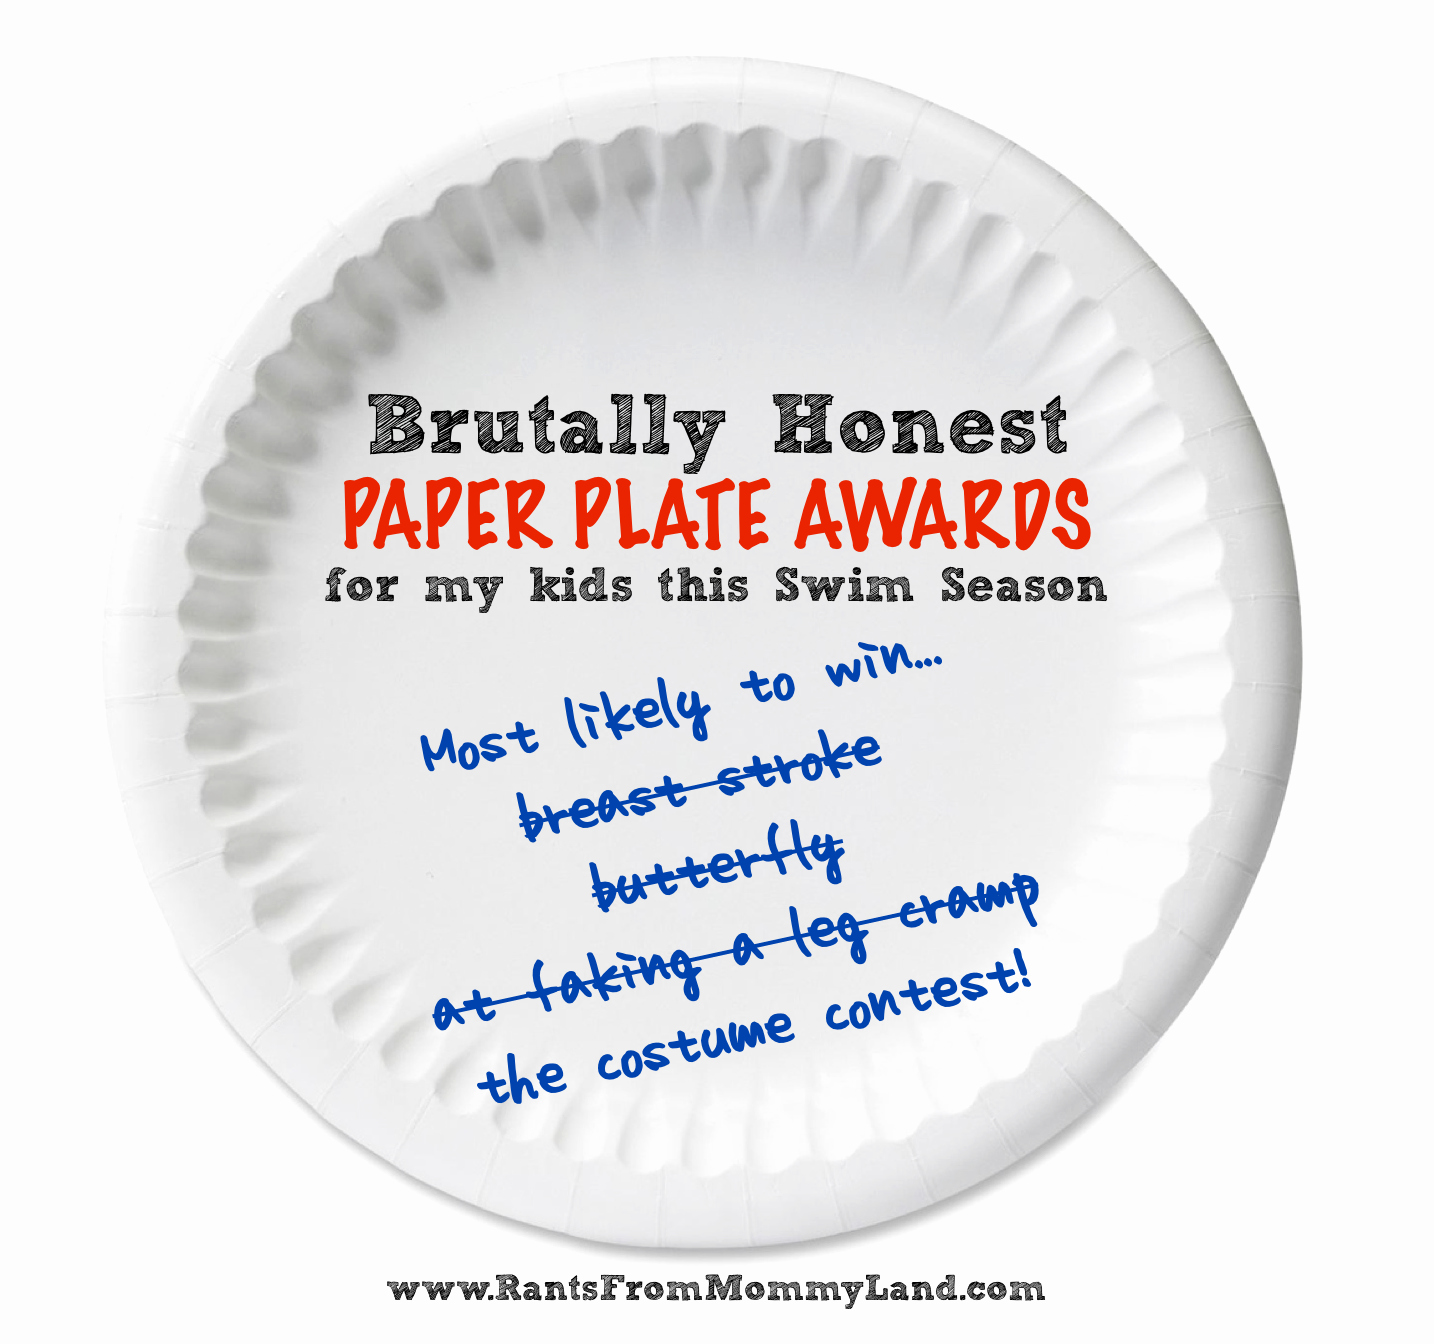 Most Improved Award Ideas Inspirational Rants From Mommyland Brutally Honest Paper Plate Awards